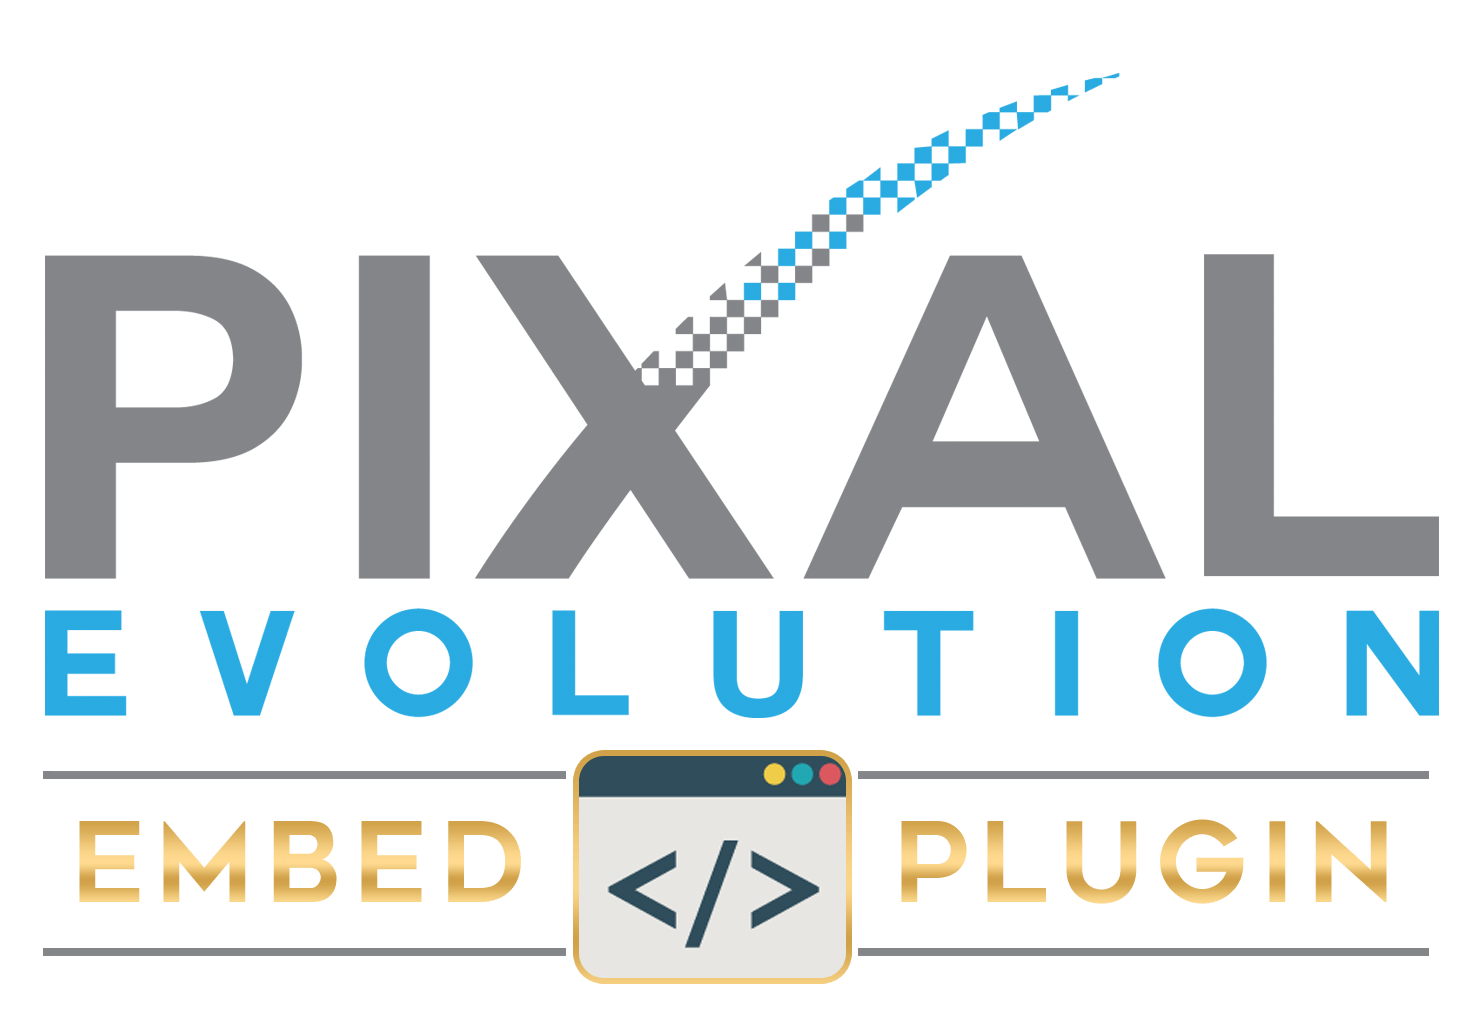 Pixal-Evolution-Embed-Plugin-Logo-2. Pixal Evolution